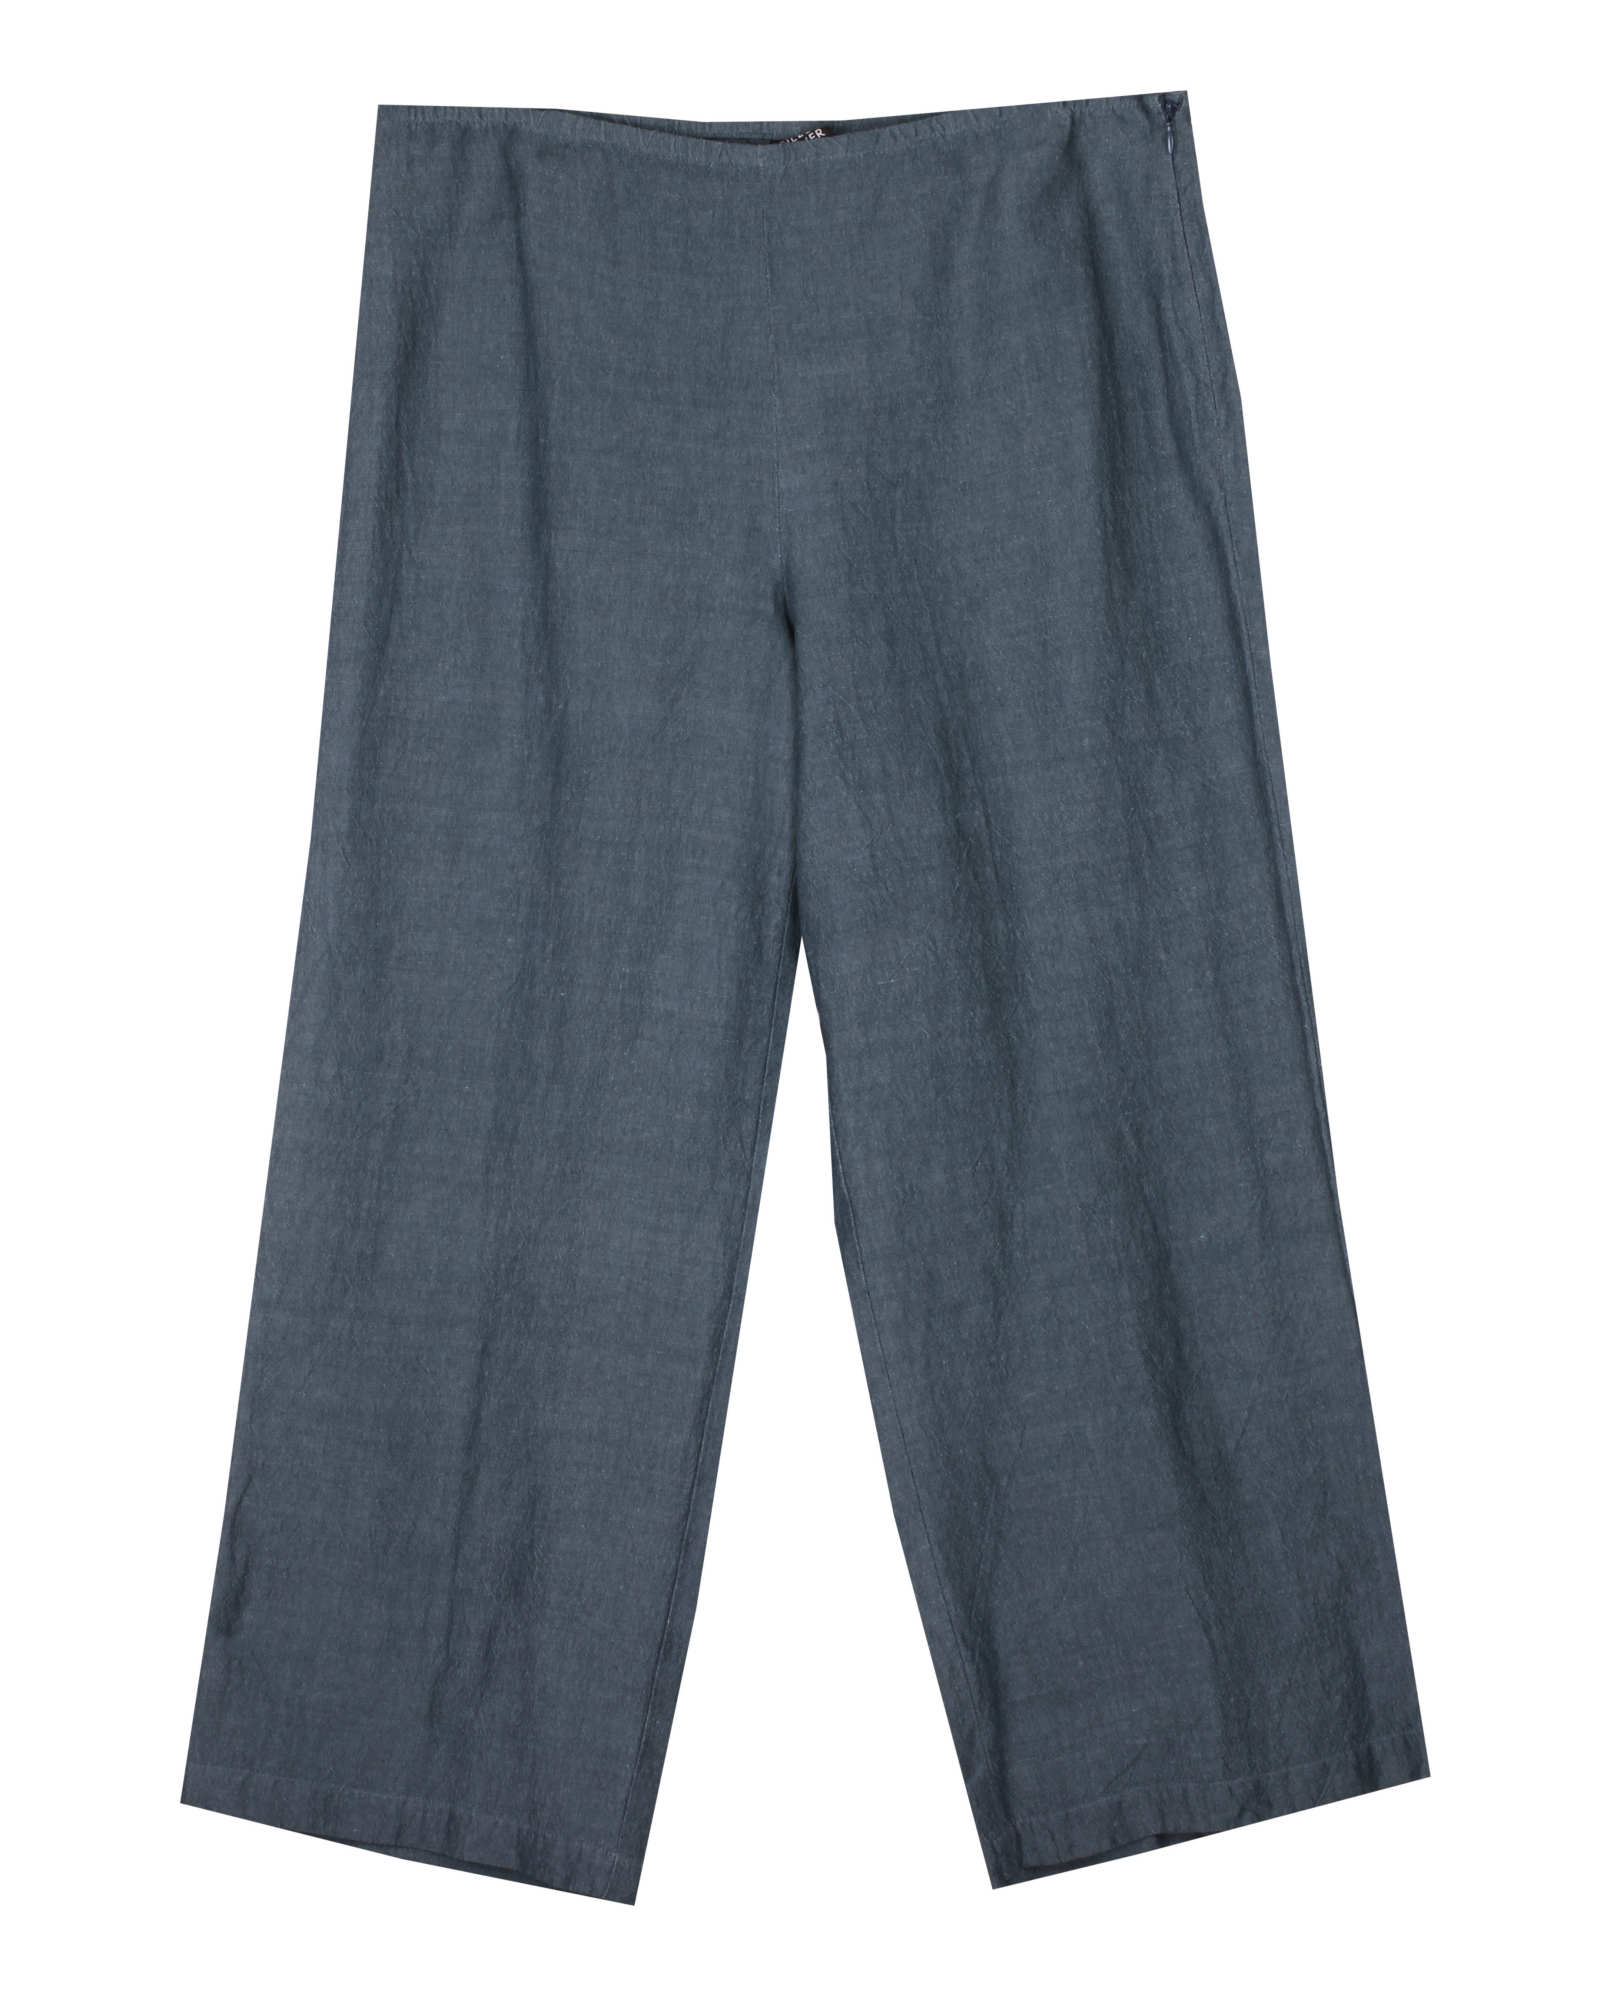 Cross-Dyed Linen Rayon Pant